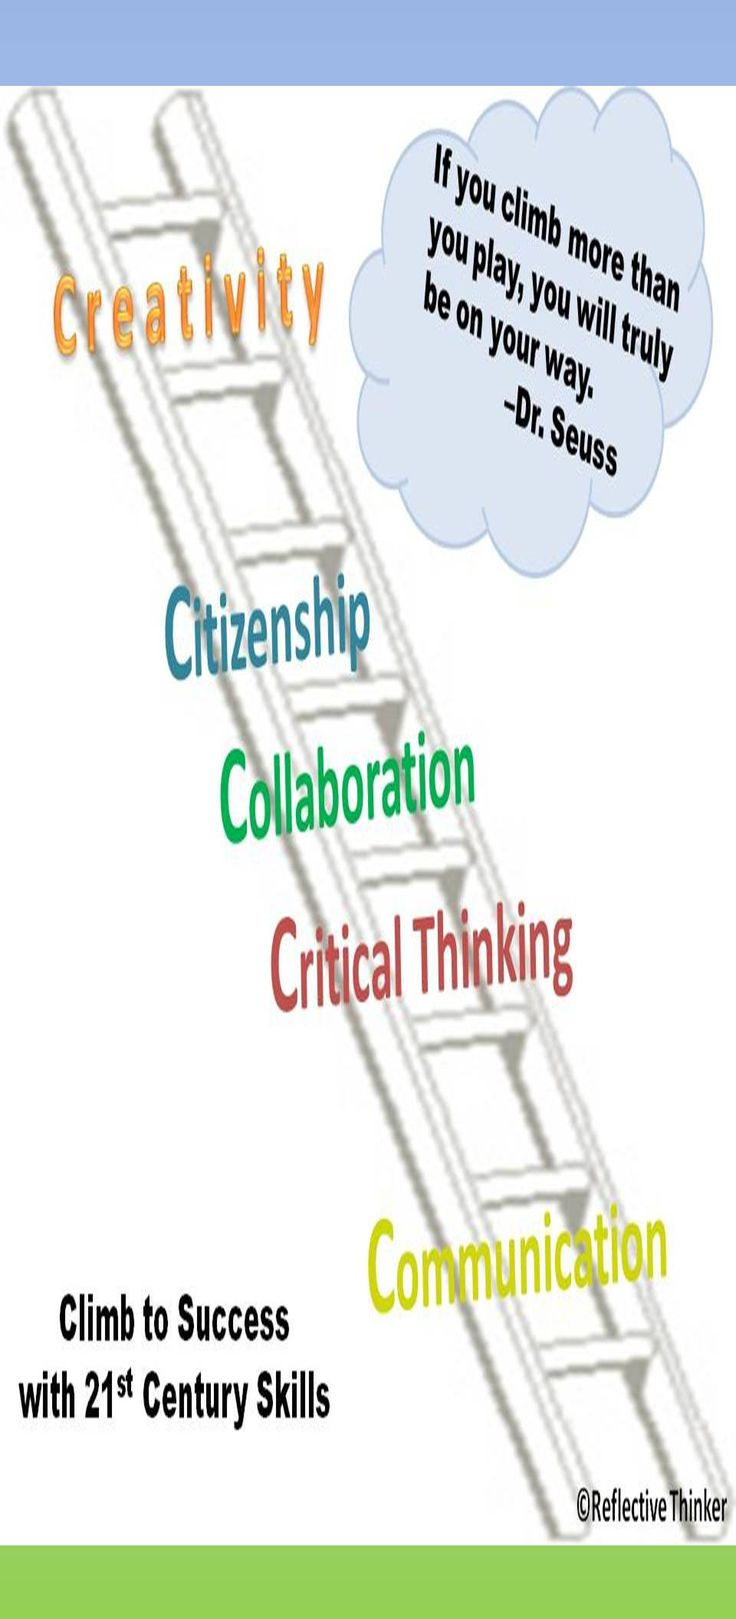 Teach students to climb higher with 21st century skills: collaboration, communication, creativity, critical thinking, citizenship, problem solving, responsibility, global literacy, media and Information literacy, reading and writing skills literacy, flexibility, and adaptability. Find 21st century skills activities and lessons in my TPT store. Find free items on Pinterest: http://www.pinterest.com/elateacher44/21st-century-skills/